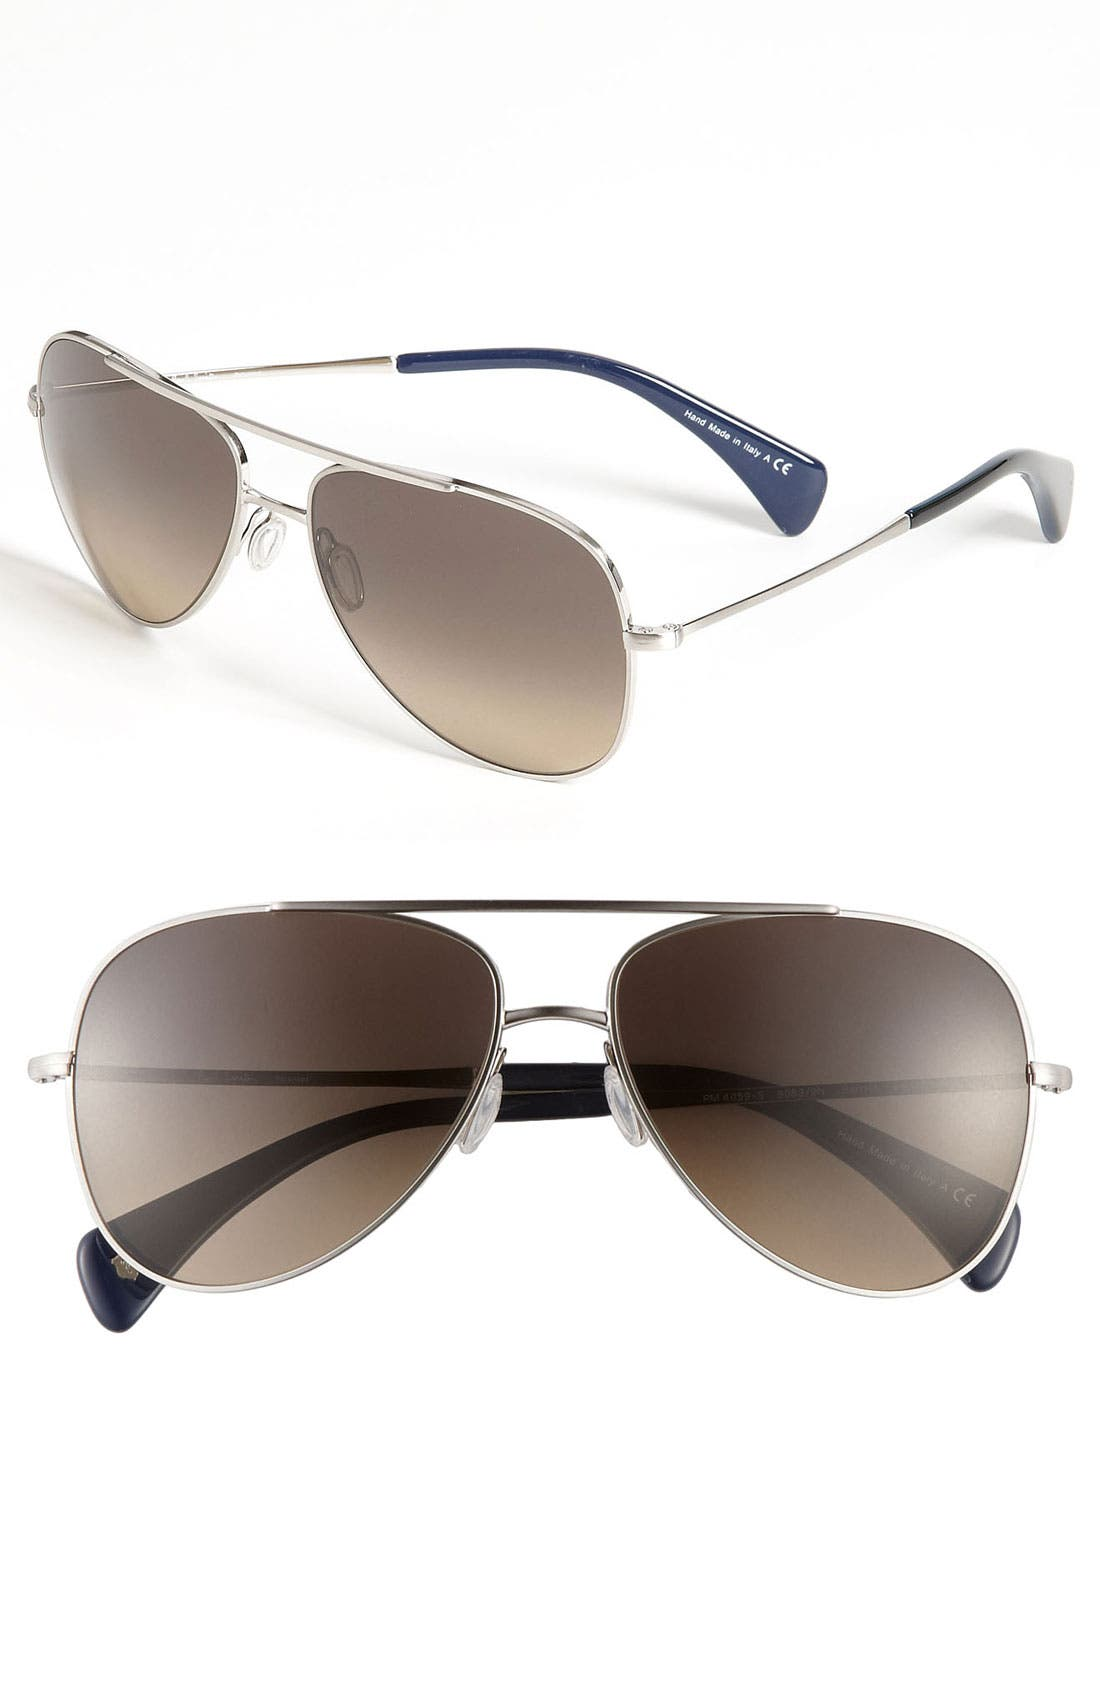 Main Image - Paul Smith 'Barrick' Polarized Aviator Sunglasses